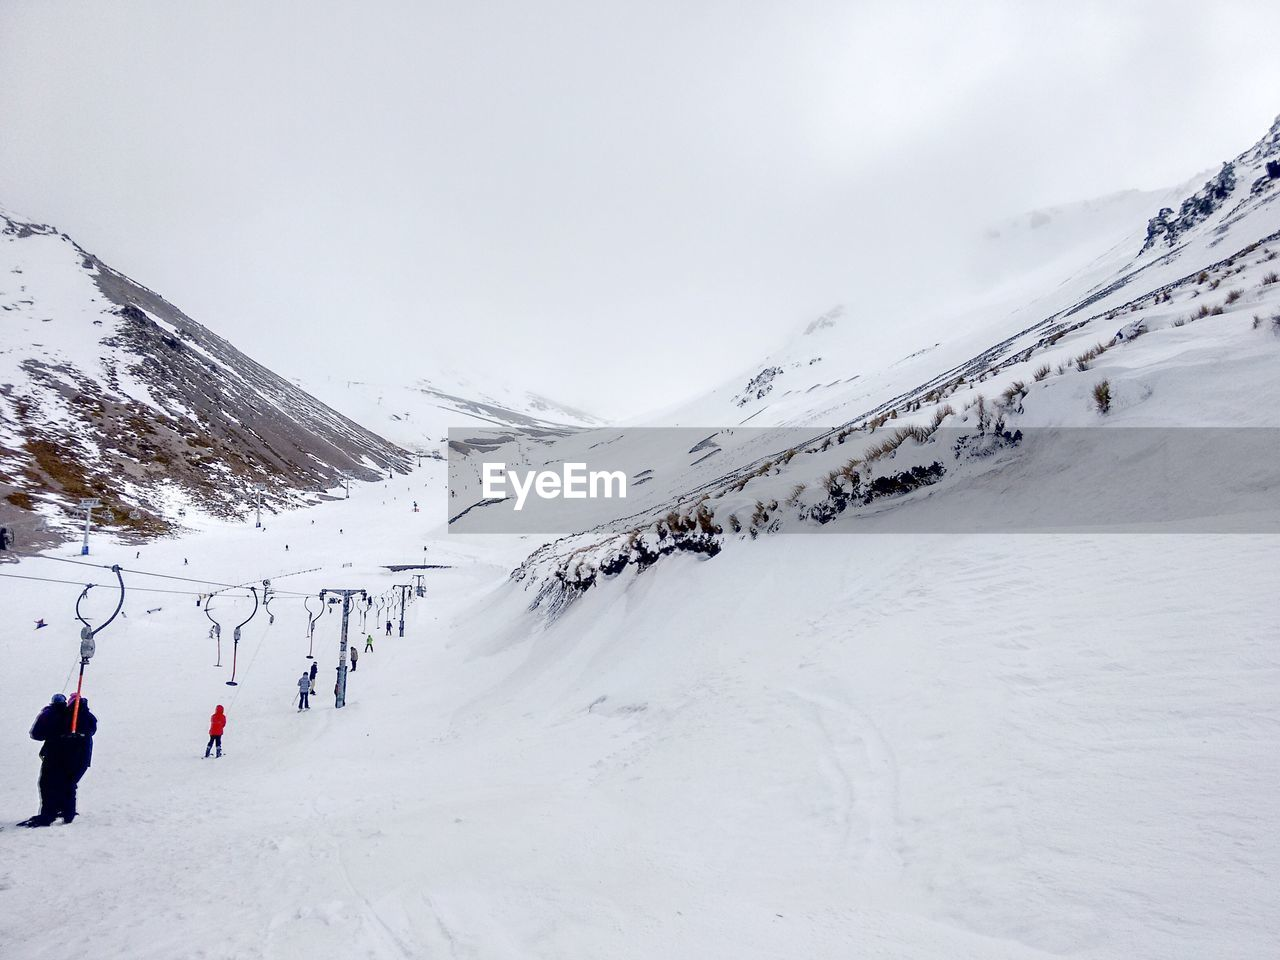 snow, winter, cold temperature, mountain, scenics - nature, sport, sky, winter sport, white color, beauty in nature, skiing, group of people, leisure activity, real people, nature, snowcapped mountain, day, adventure, tranquil scene, mountain range, outdoors